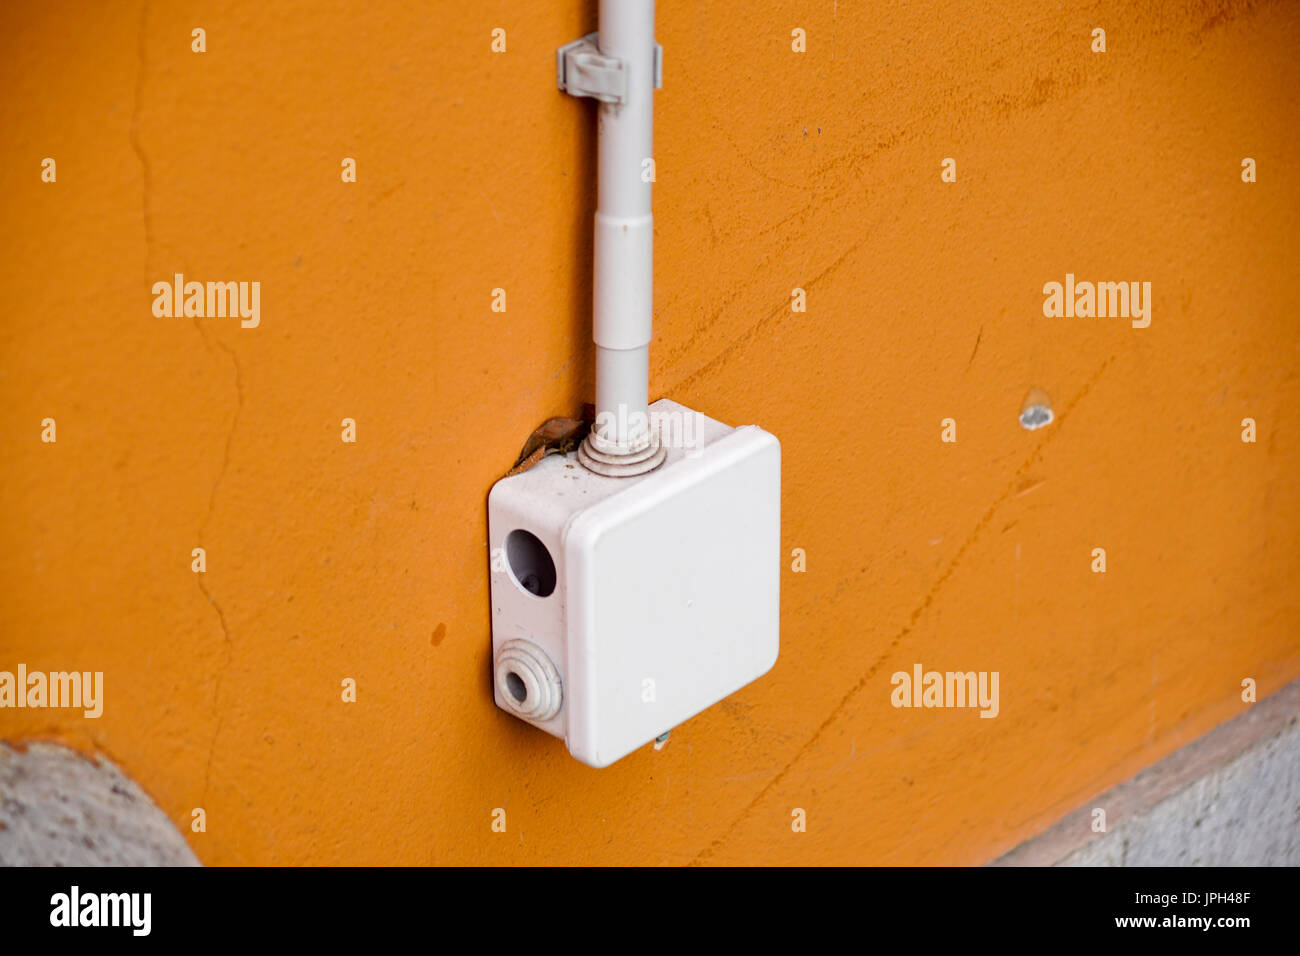 Yellow Wire Fuse Electric Stock Photos Old Box Panel Splice Electrical For Splicing Out Dooron Wall Image